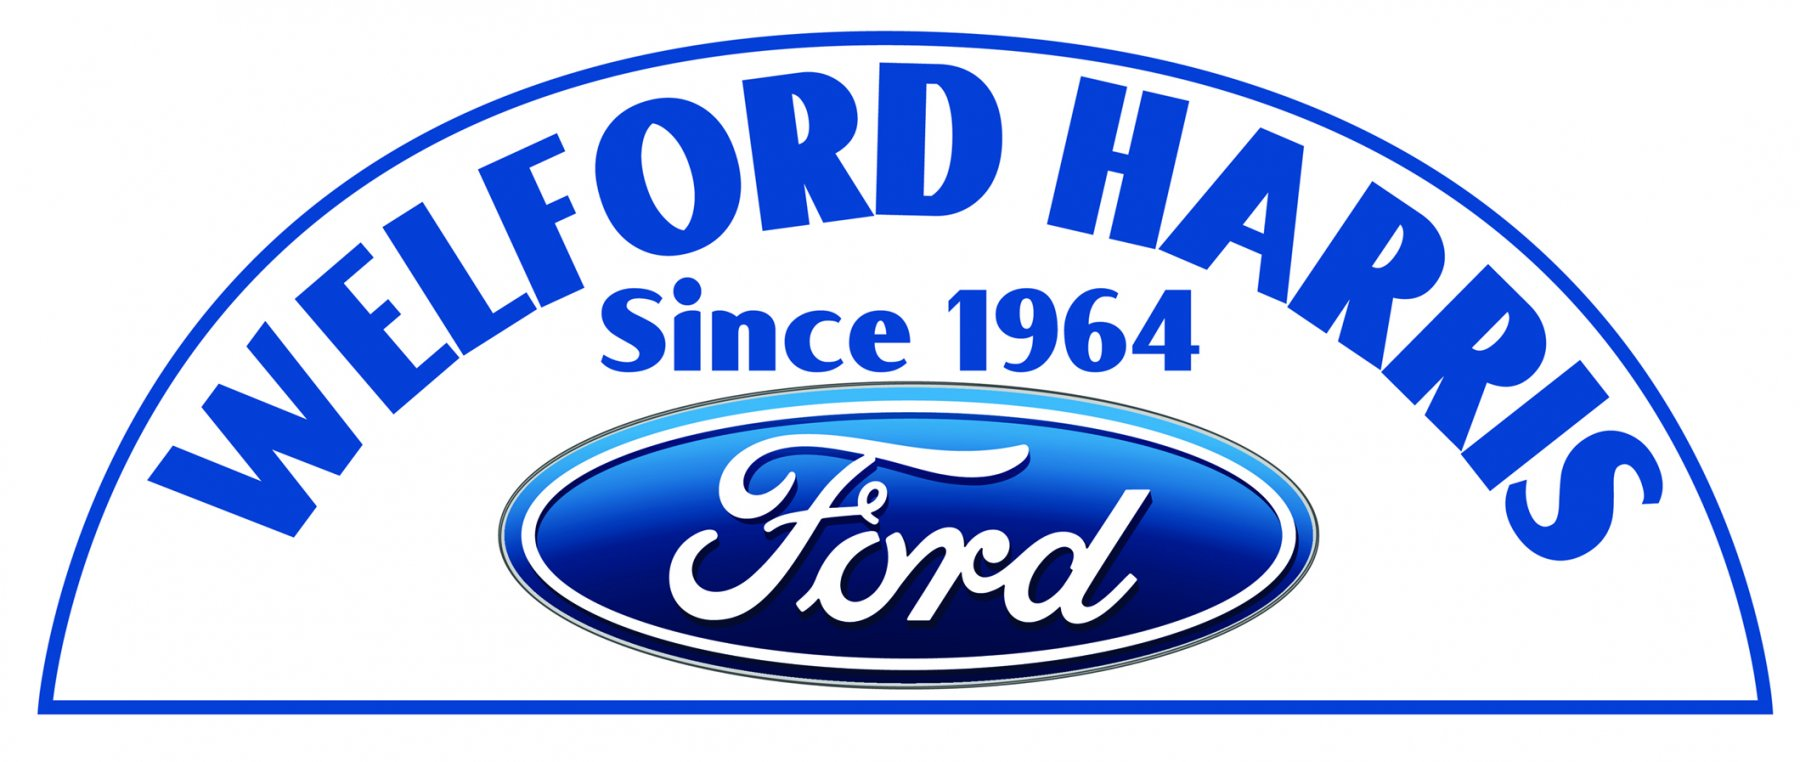 Welford Harris Ford Siler City NC